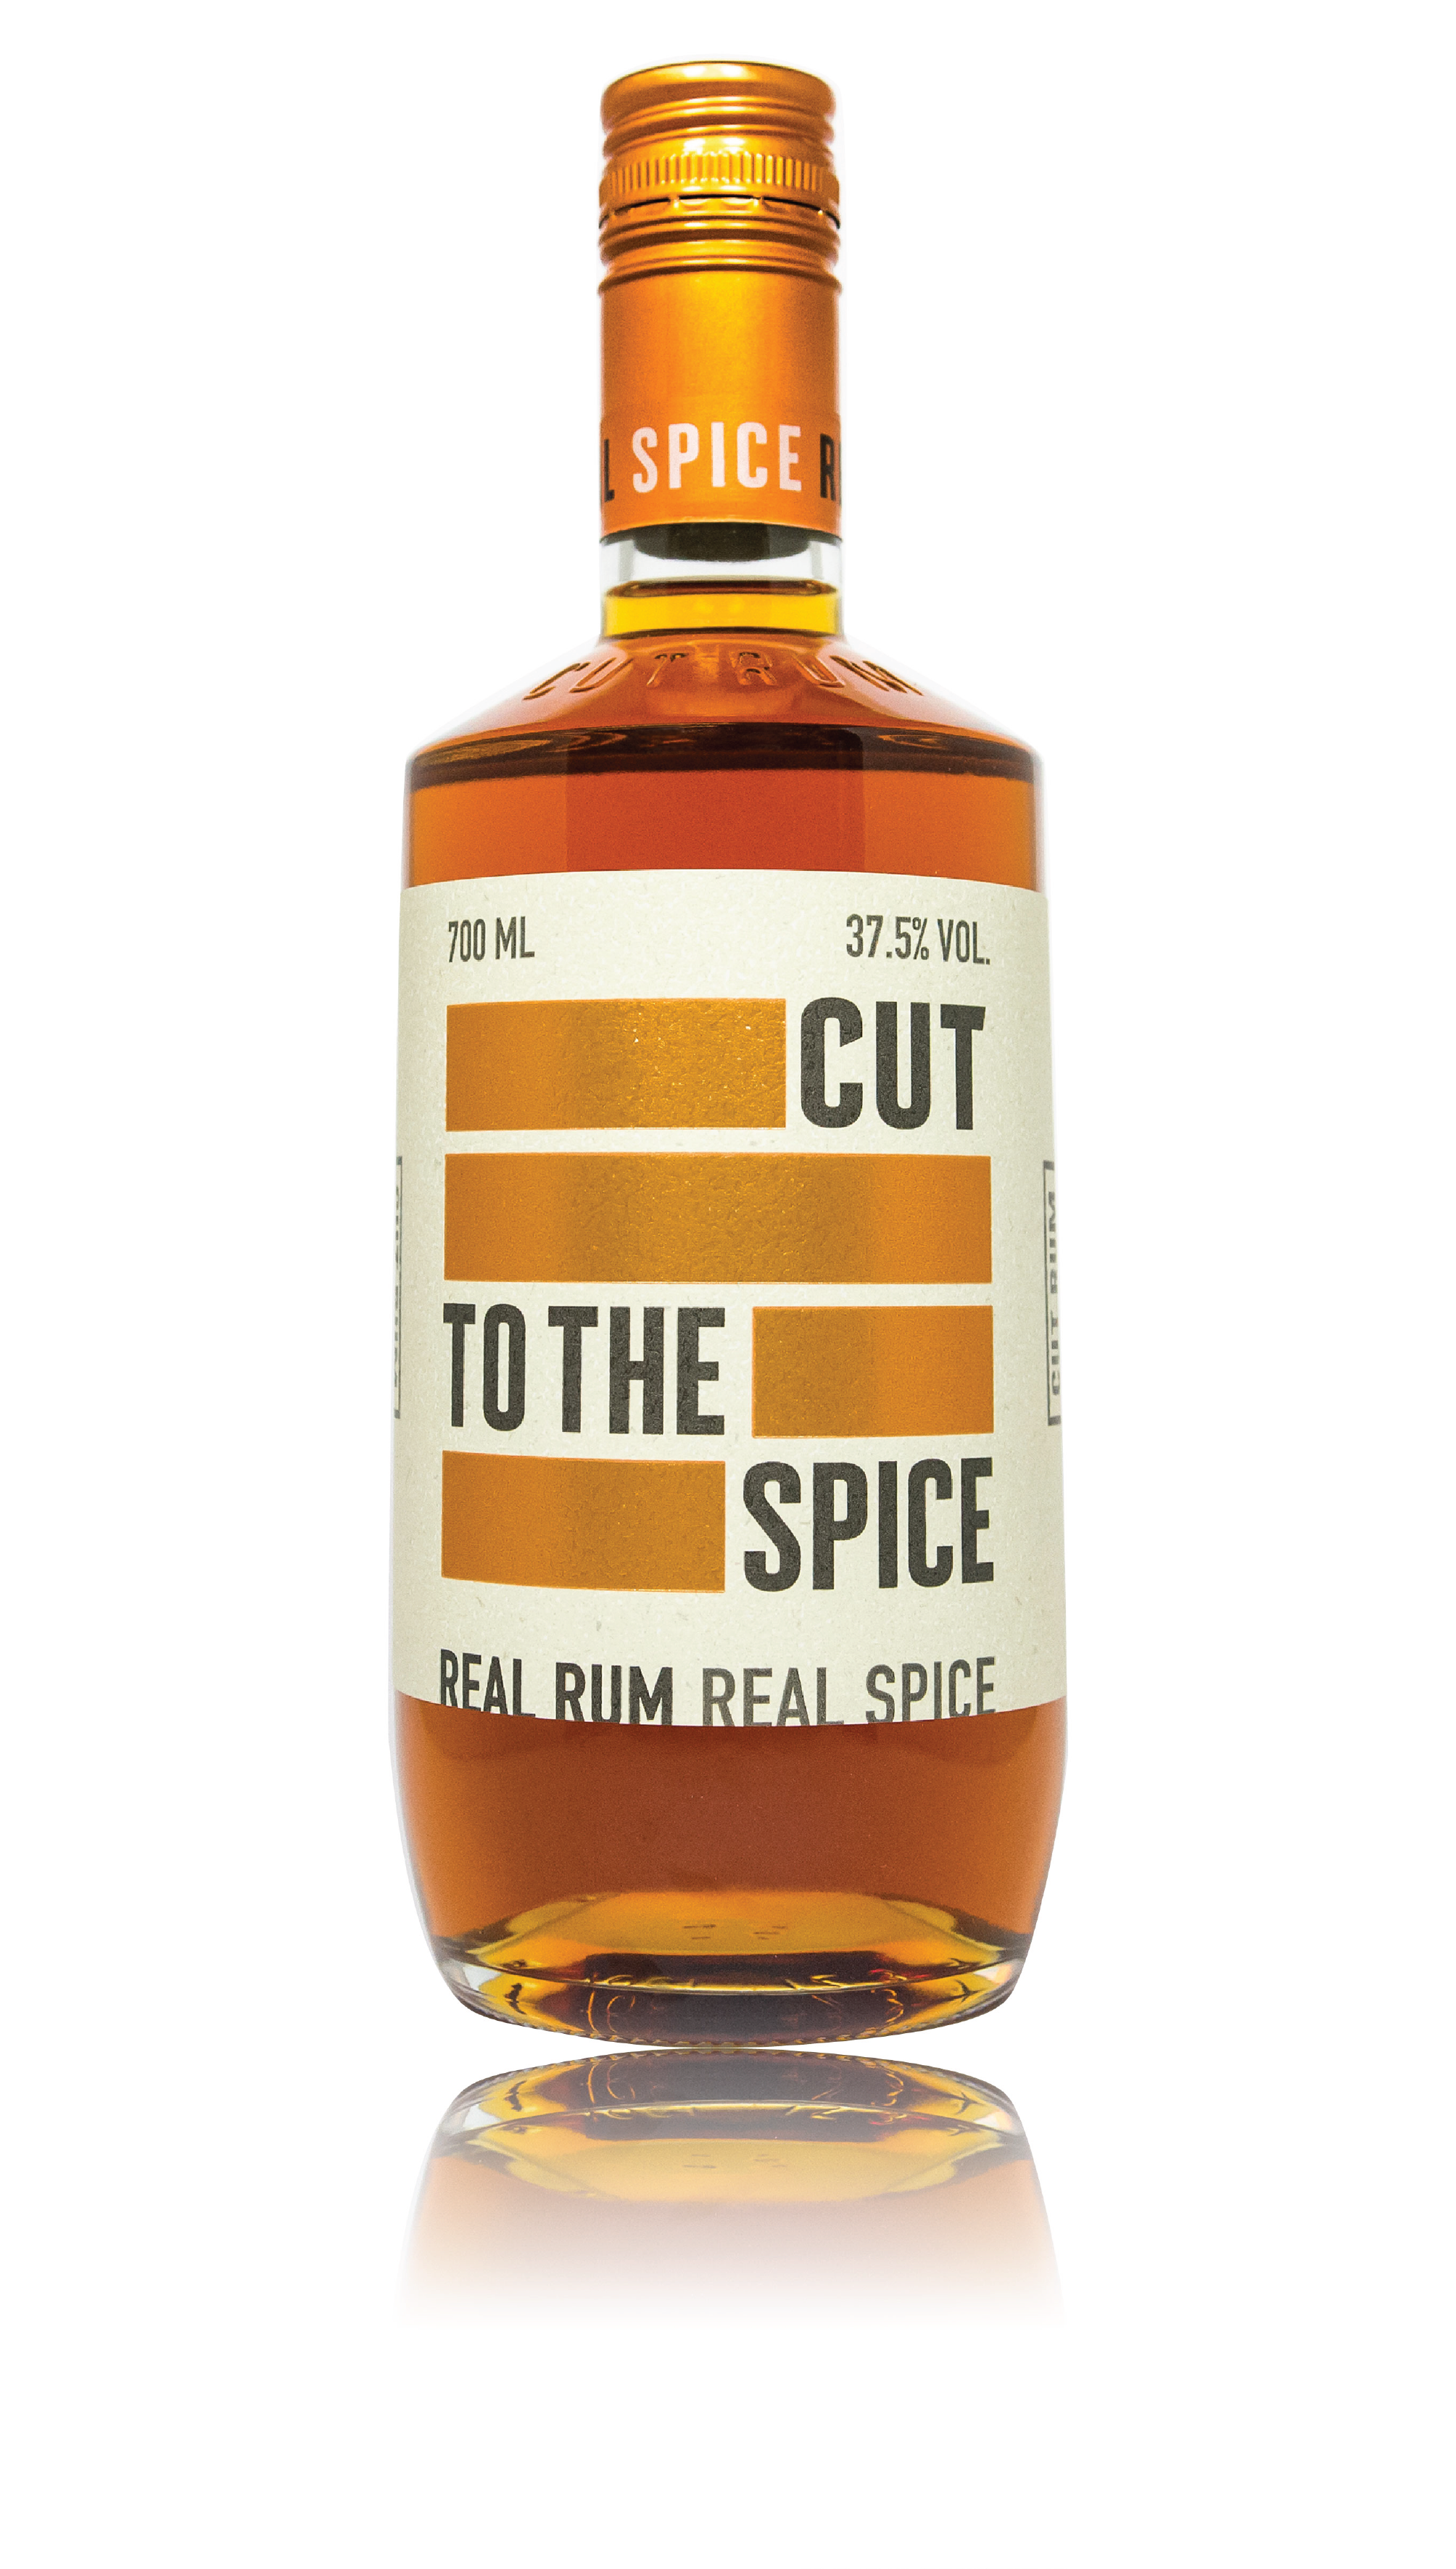 CUT SPICED RUM - 37.5% ABVPREMIUM CARIBBEAN RUM INFUSED WITH ANISEED, NUTMEG, GINGER, BLACK PEPPERCORN, CINNAMON, CORIANDER SEED LEMON PEEL AND SWEET VANILLA PODSON THE NOSETOASTED ███ ORANGE █████  PANCAKE BATTER █████ VANILLA  ON THE TASTE BOLD ████ CREAMY ██████    ███ PEPPER ████  VANILLA ███  SEA SALT ████████ CARAMEL